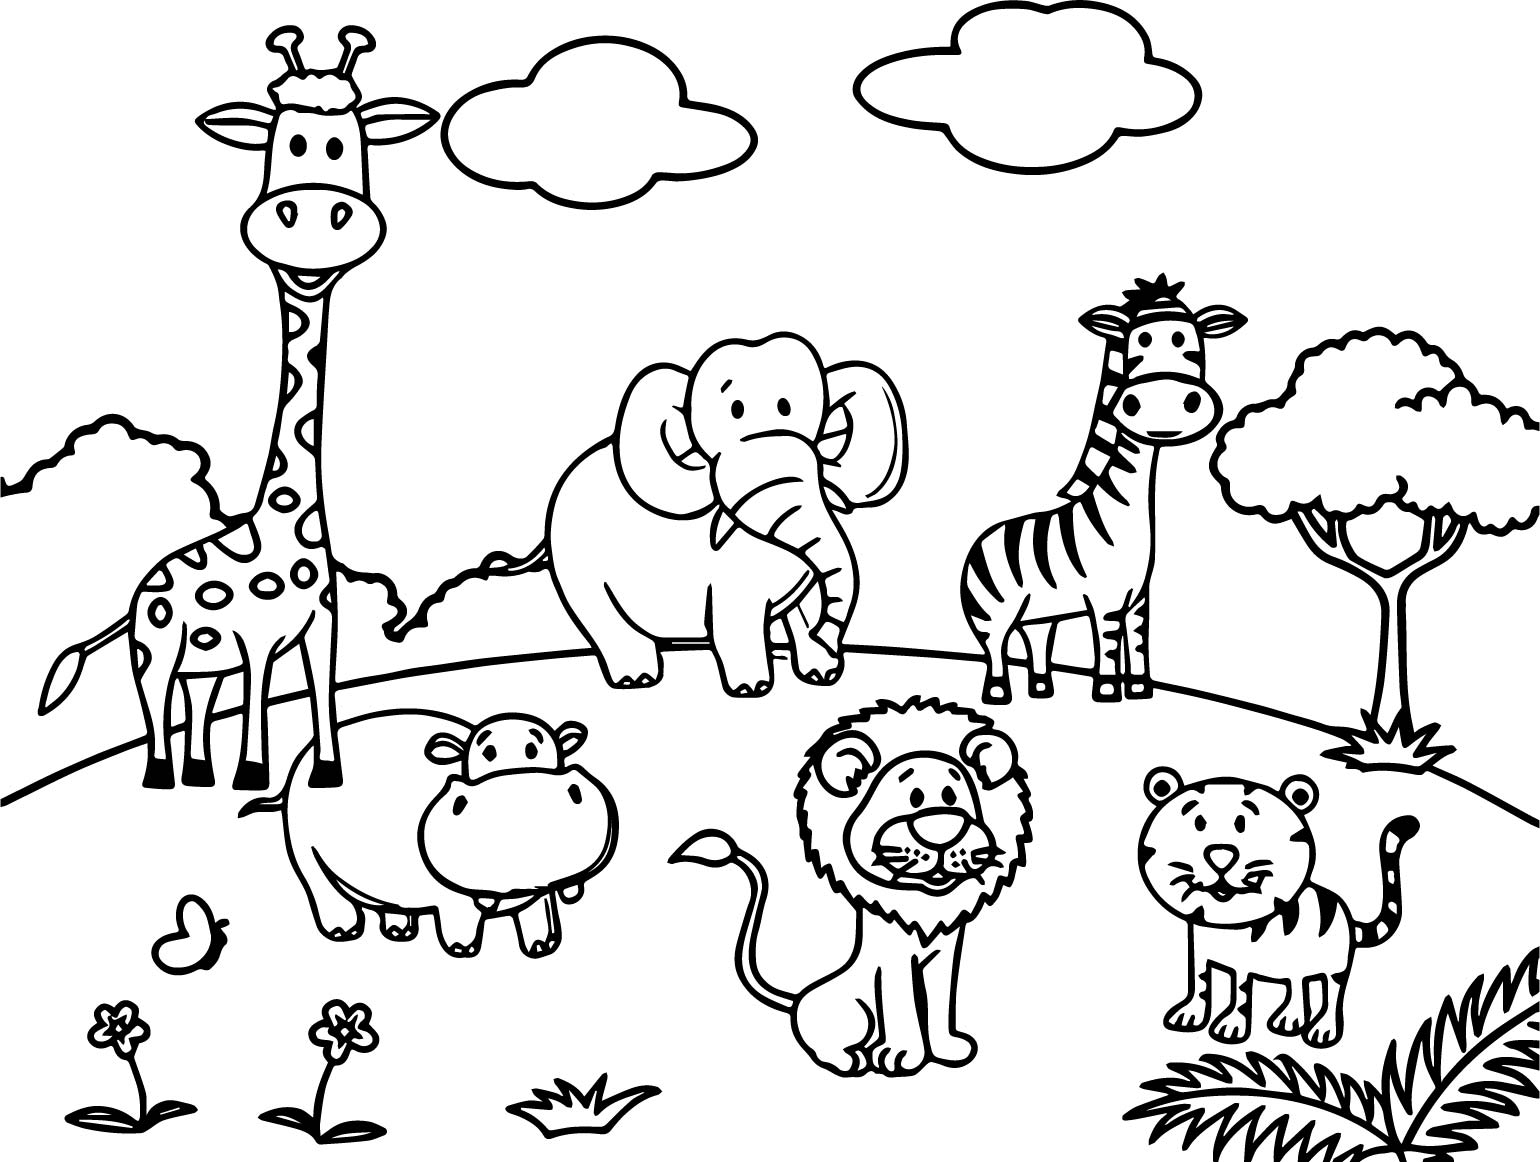 cartoon animals all coloring page wecoloringpage